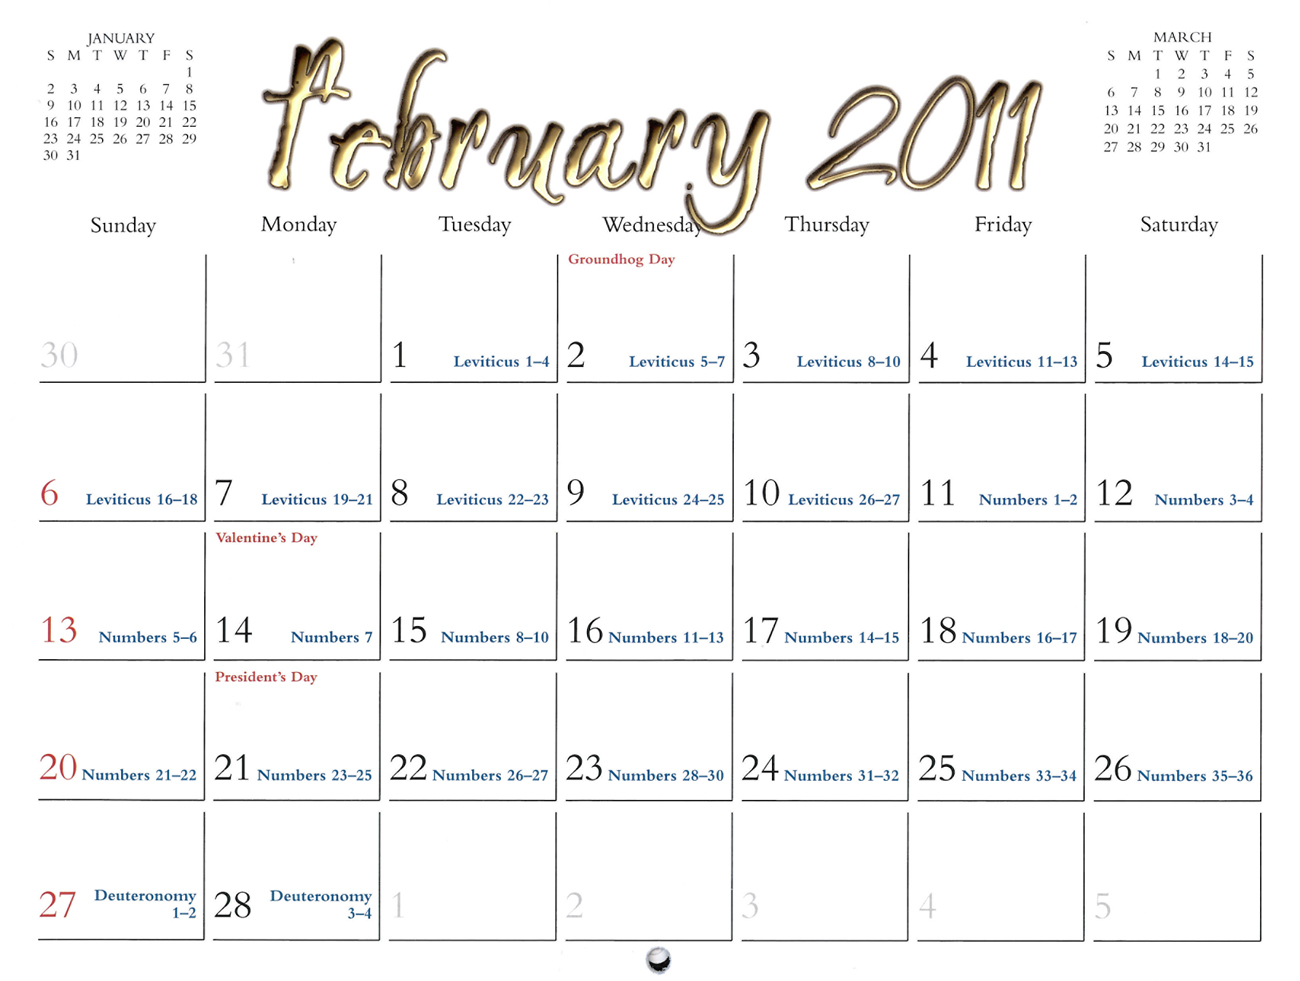 2011 Prophecy Calendar: February - Prophecies of Isaiah